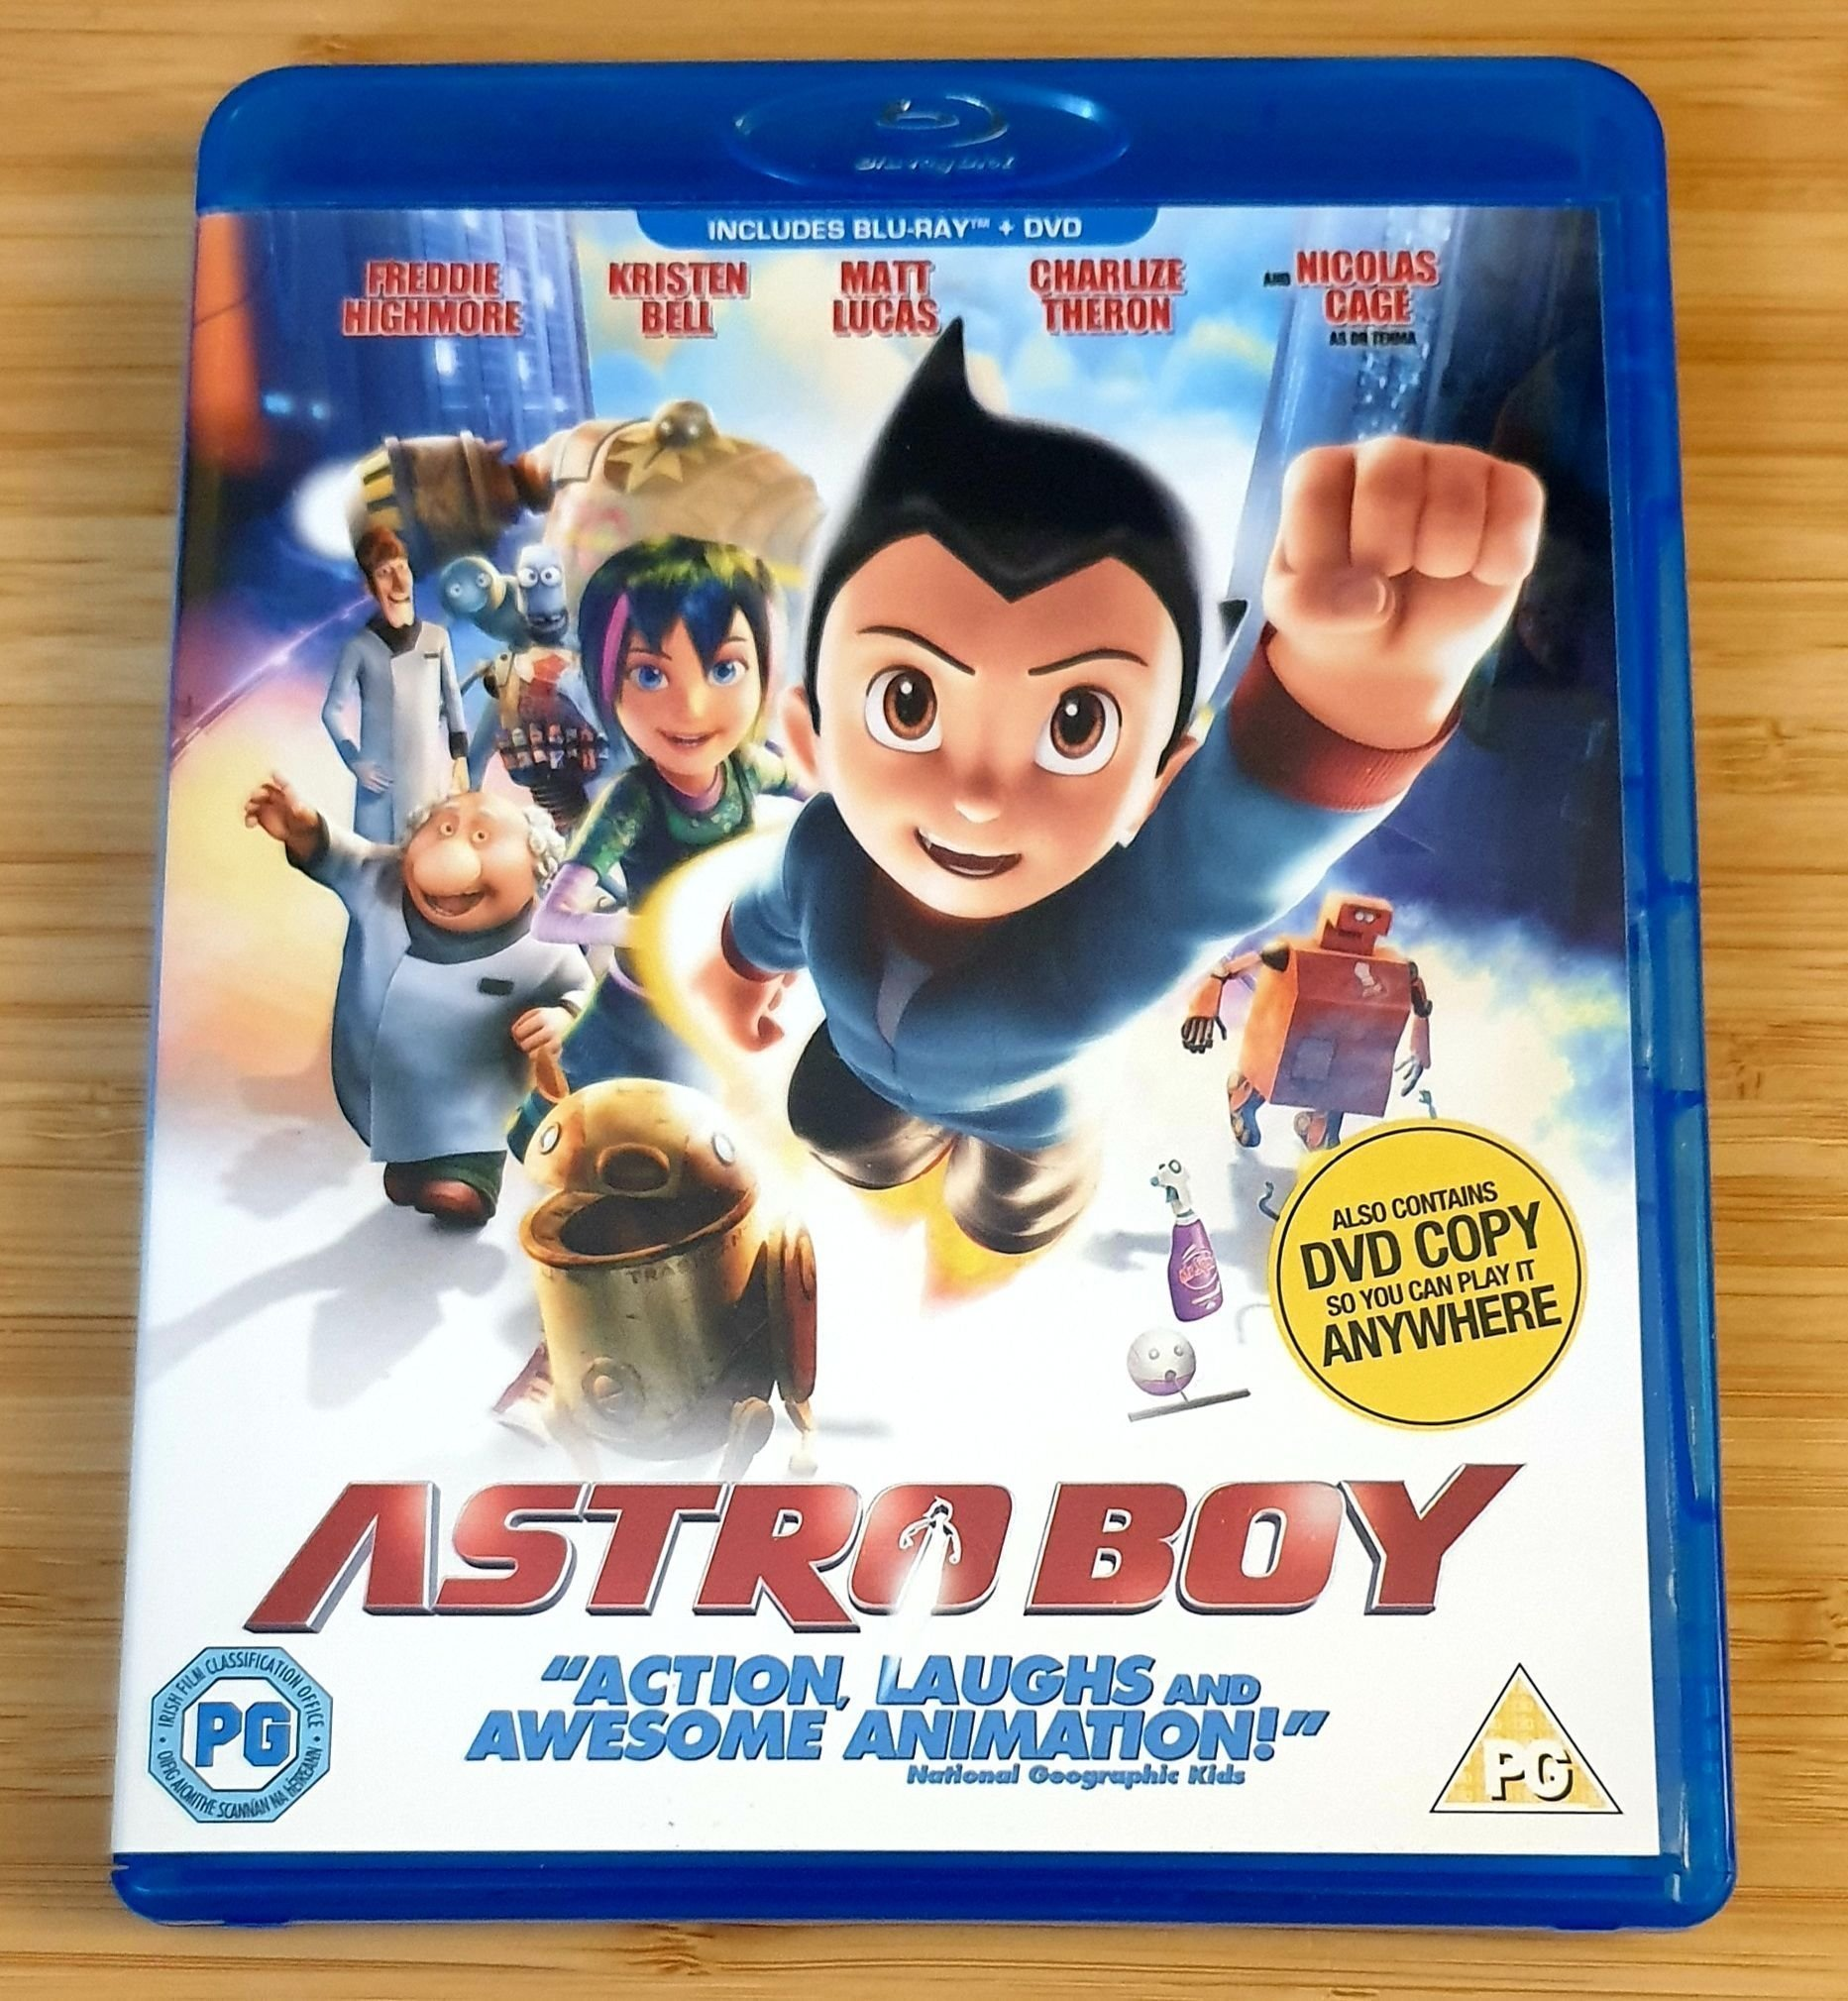 Astro Boy (Blu-ray + DVD) UK import